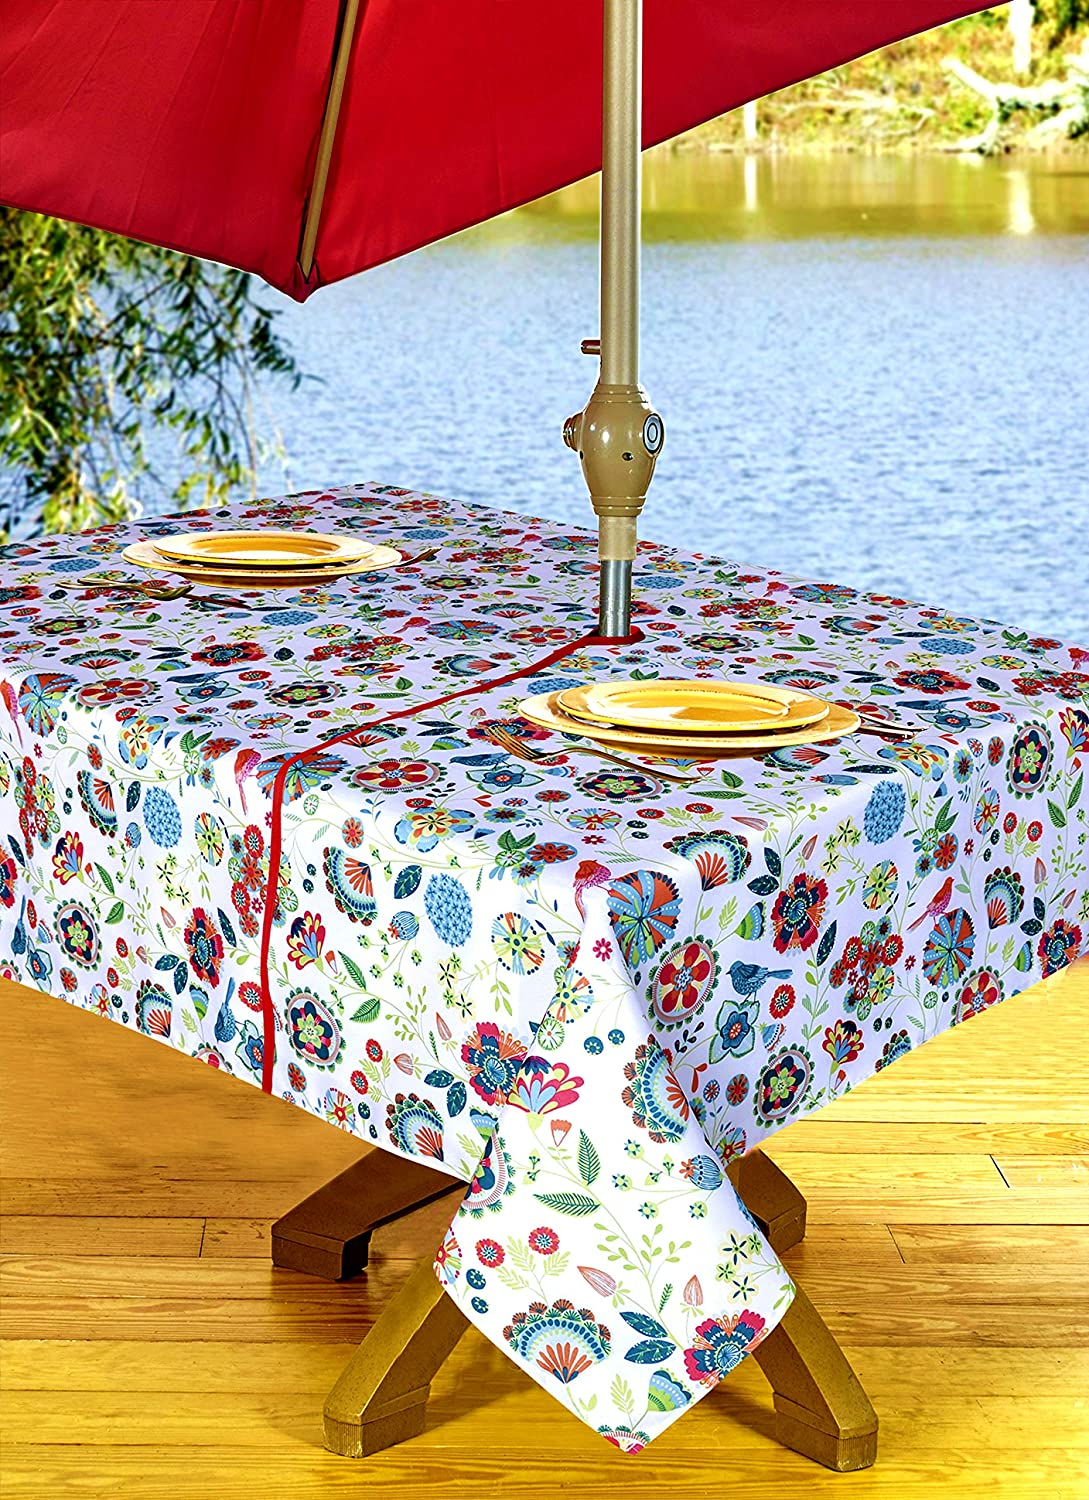 Delicieux Amazon.com: Outdoor Tablecloths, Umbrella Hole With Zipper Patio Tablecloth,  Stain Resistant, Spill Proof, Shrink Resistant, Iron Free, ...